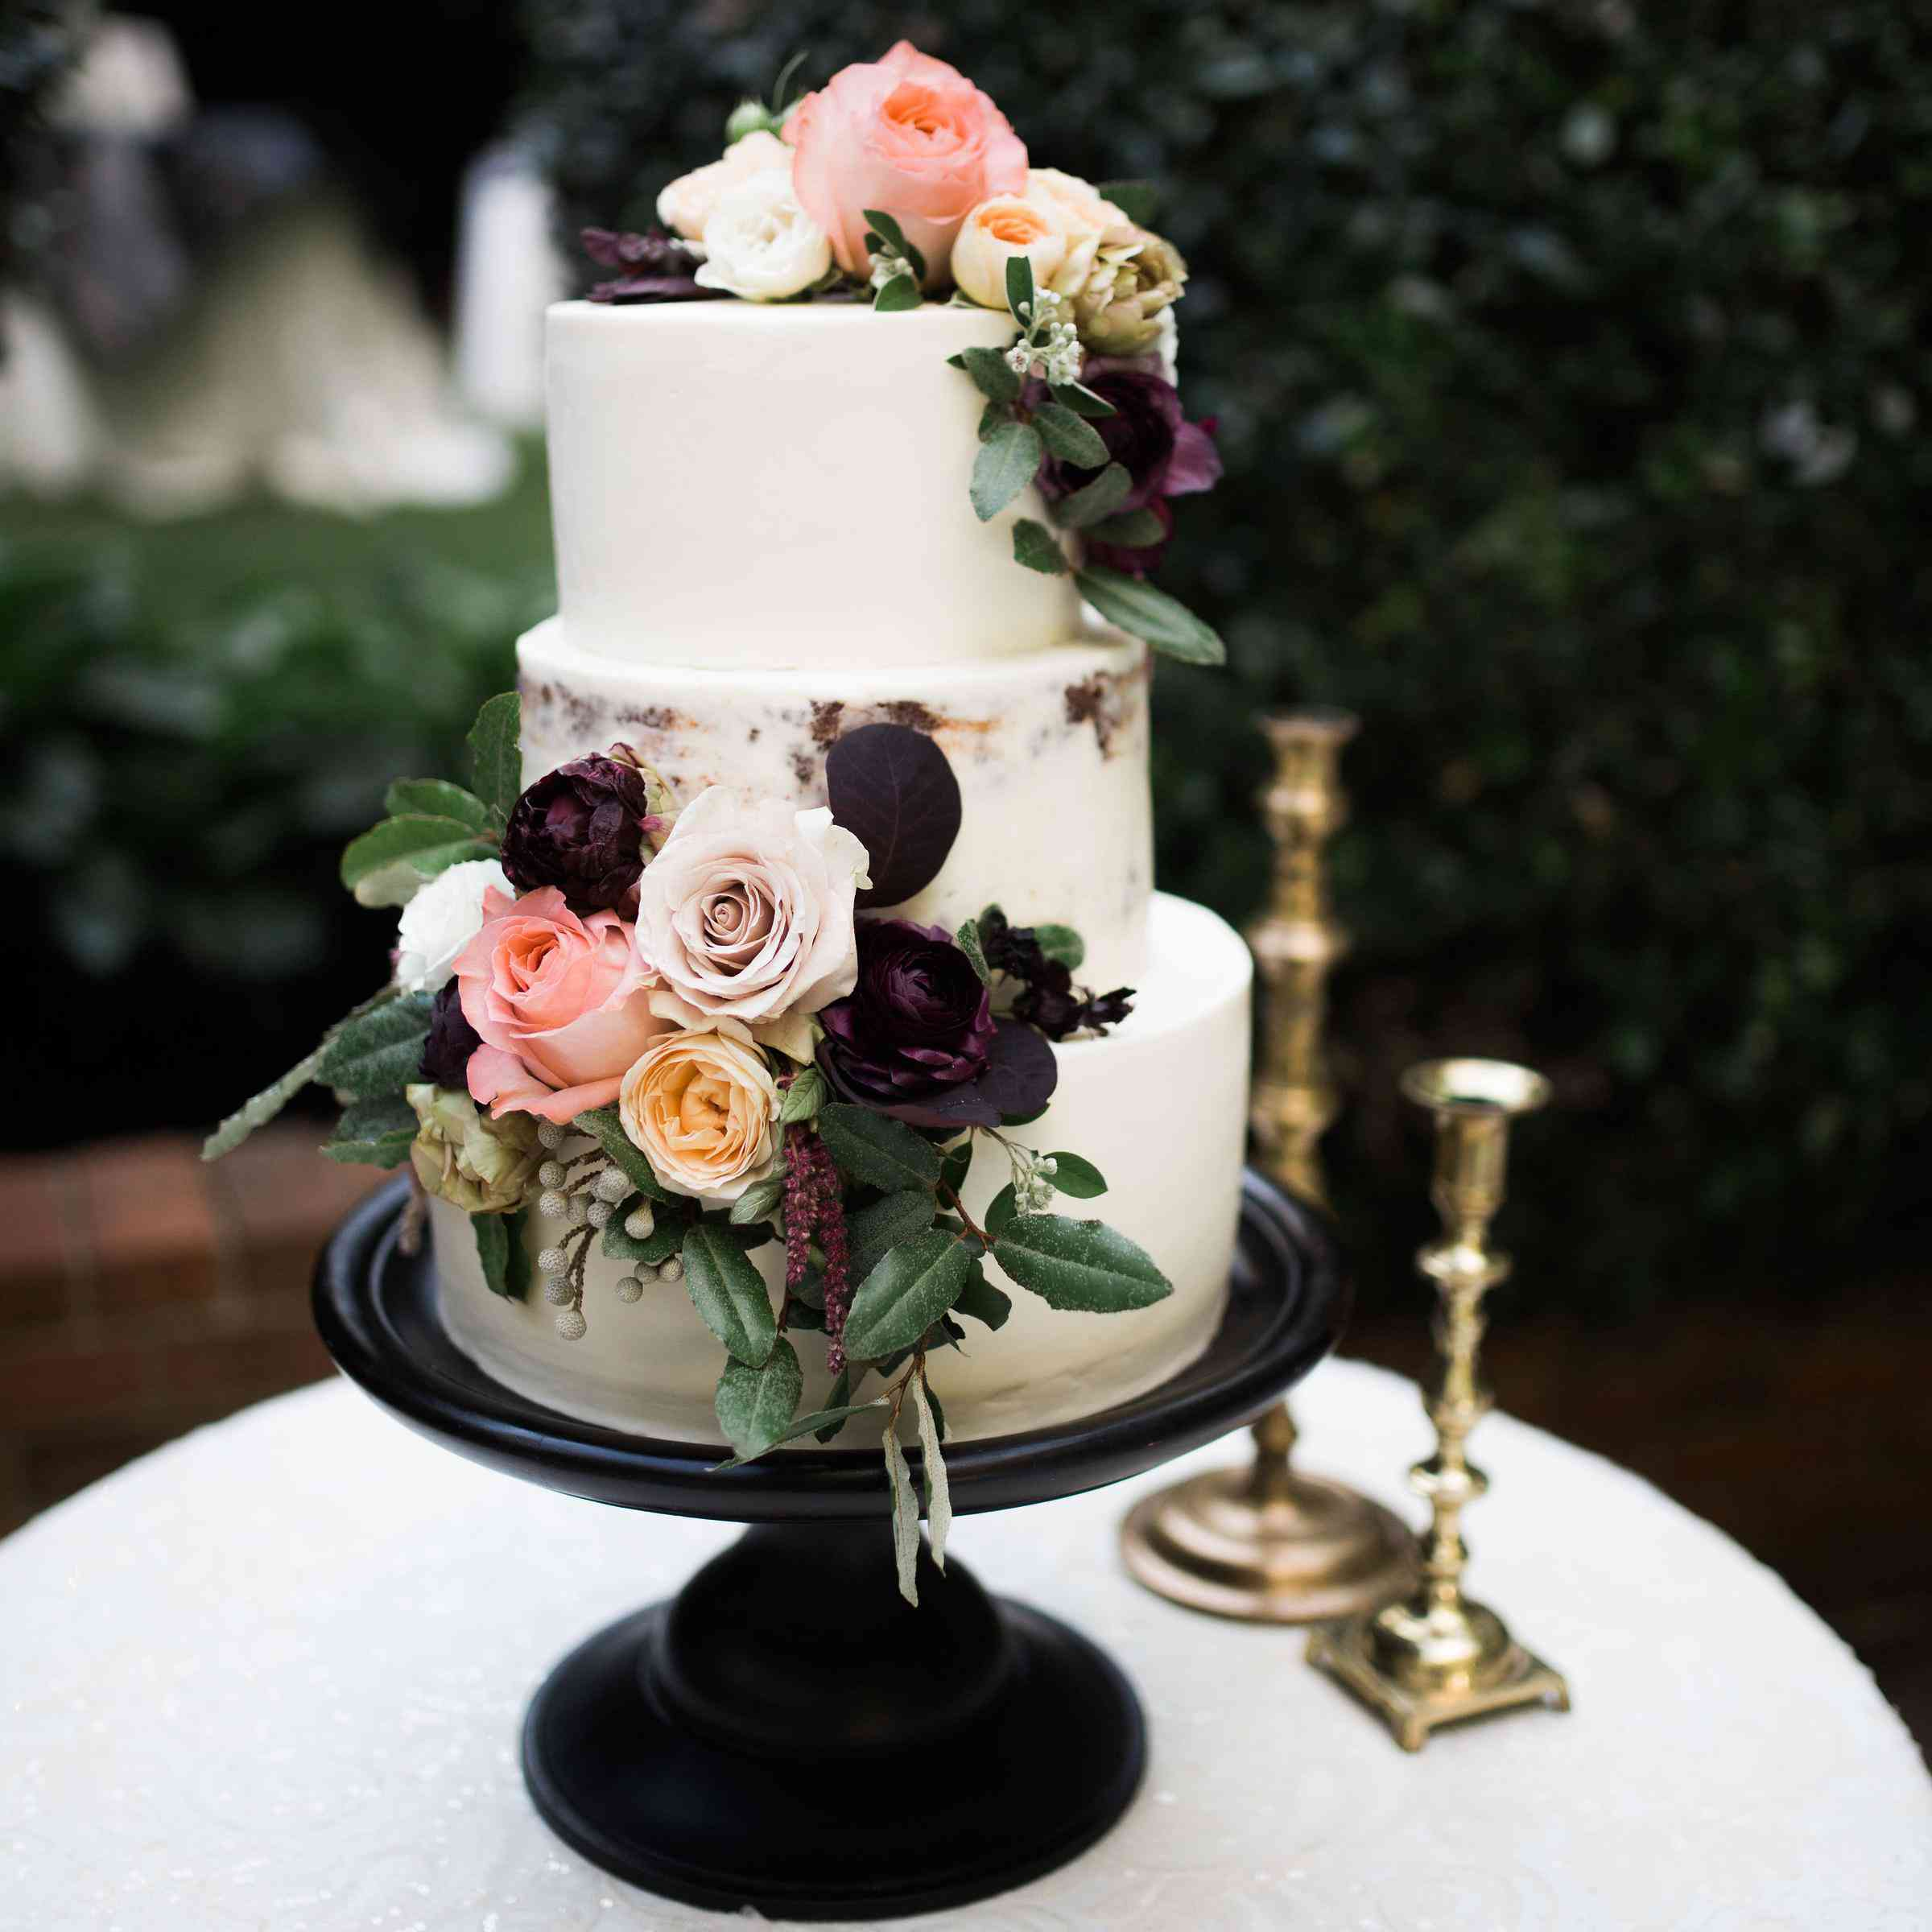 Cake Decorating Wedding Ideas: 85 Of The Prettiest Floral Wedding Cakes